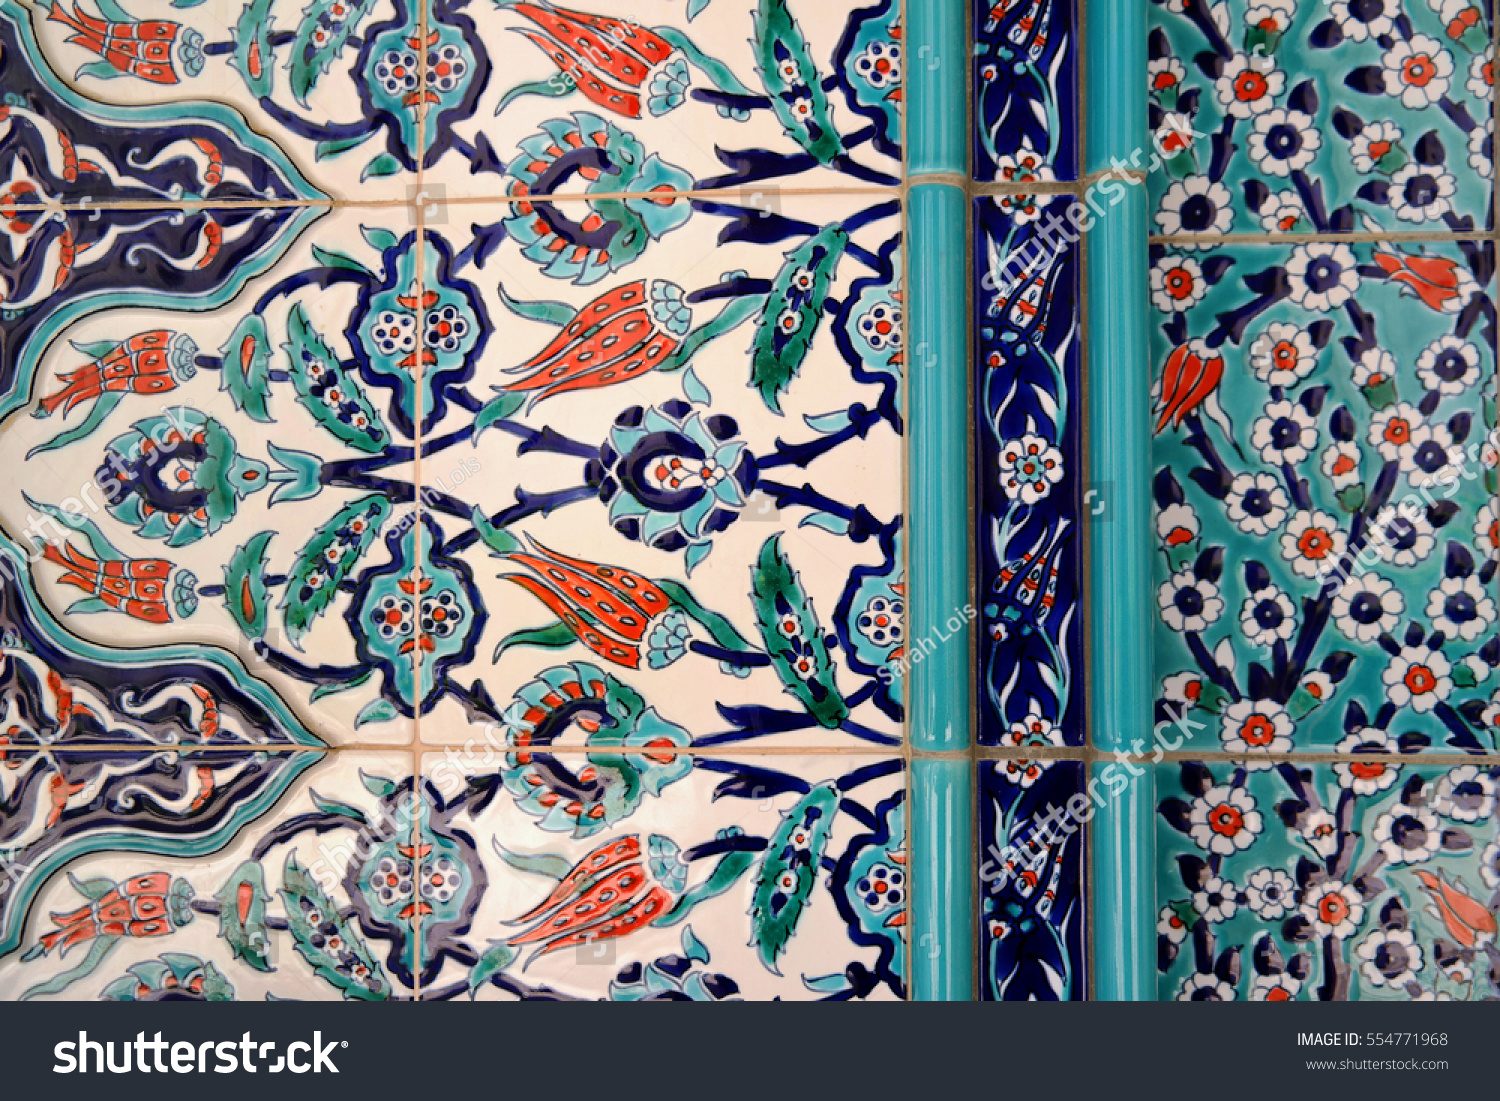 Detail Izmirstyle Patterned Wall Tile Muscat Stock Photo (Royalty ...